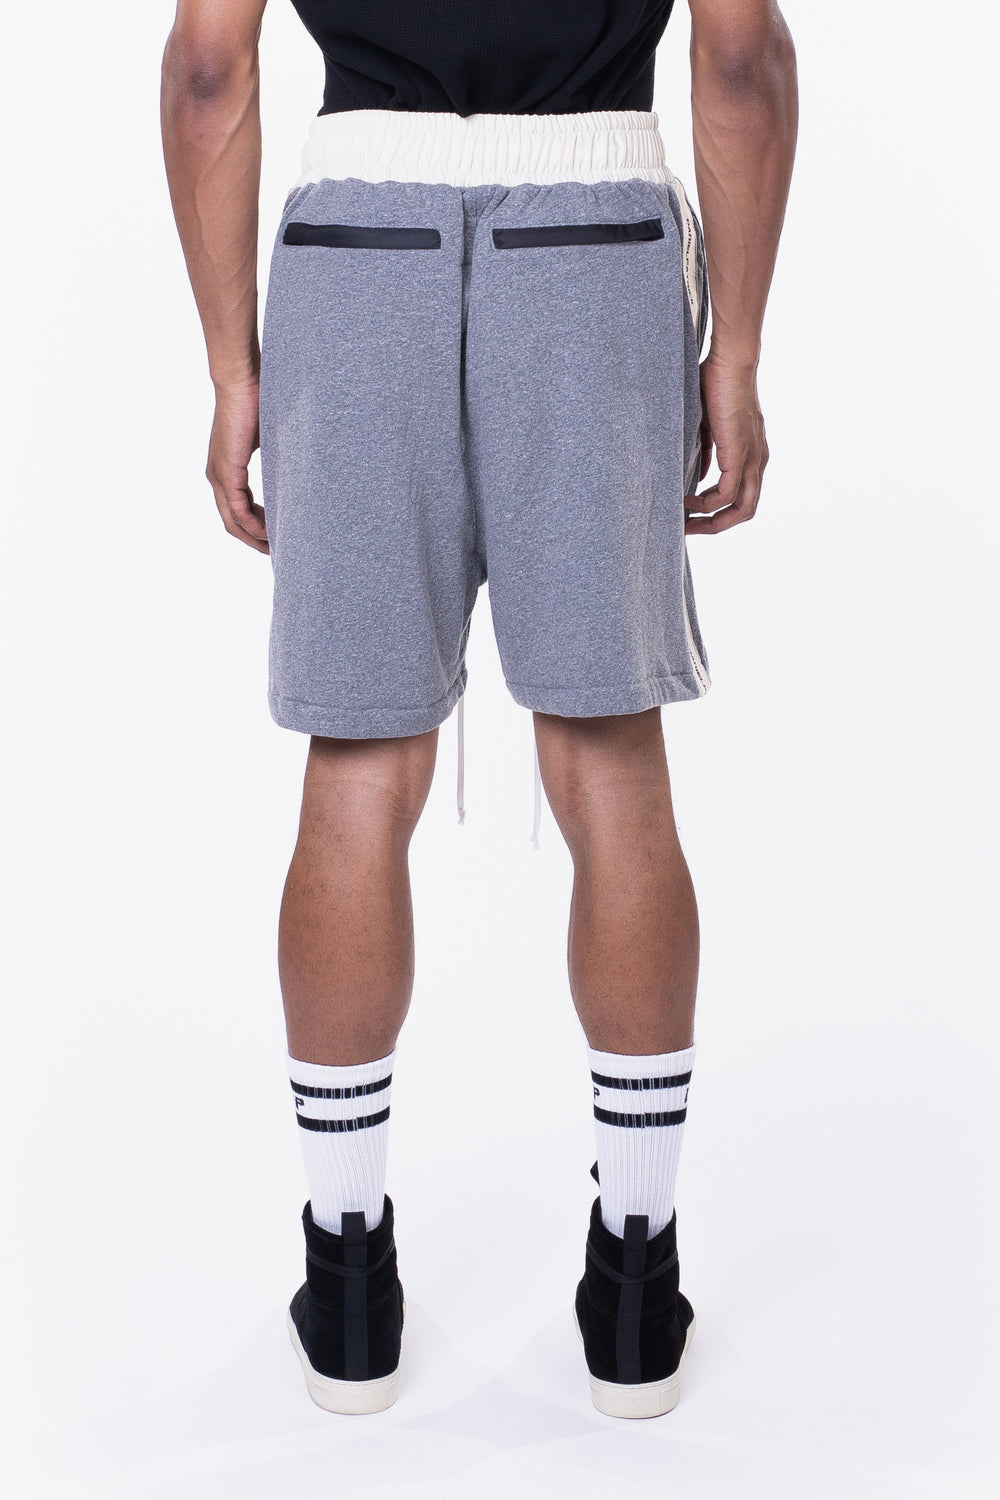 loop terry gym short / heather grey + ivory